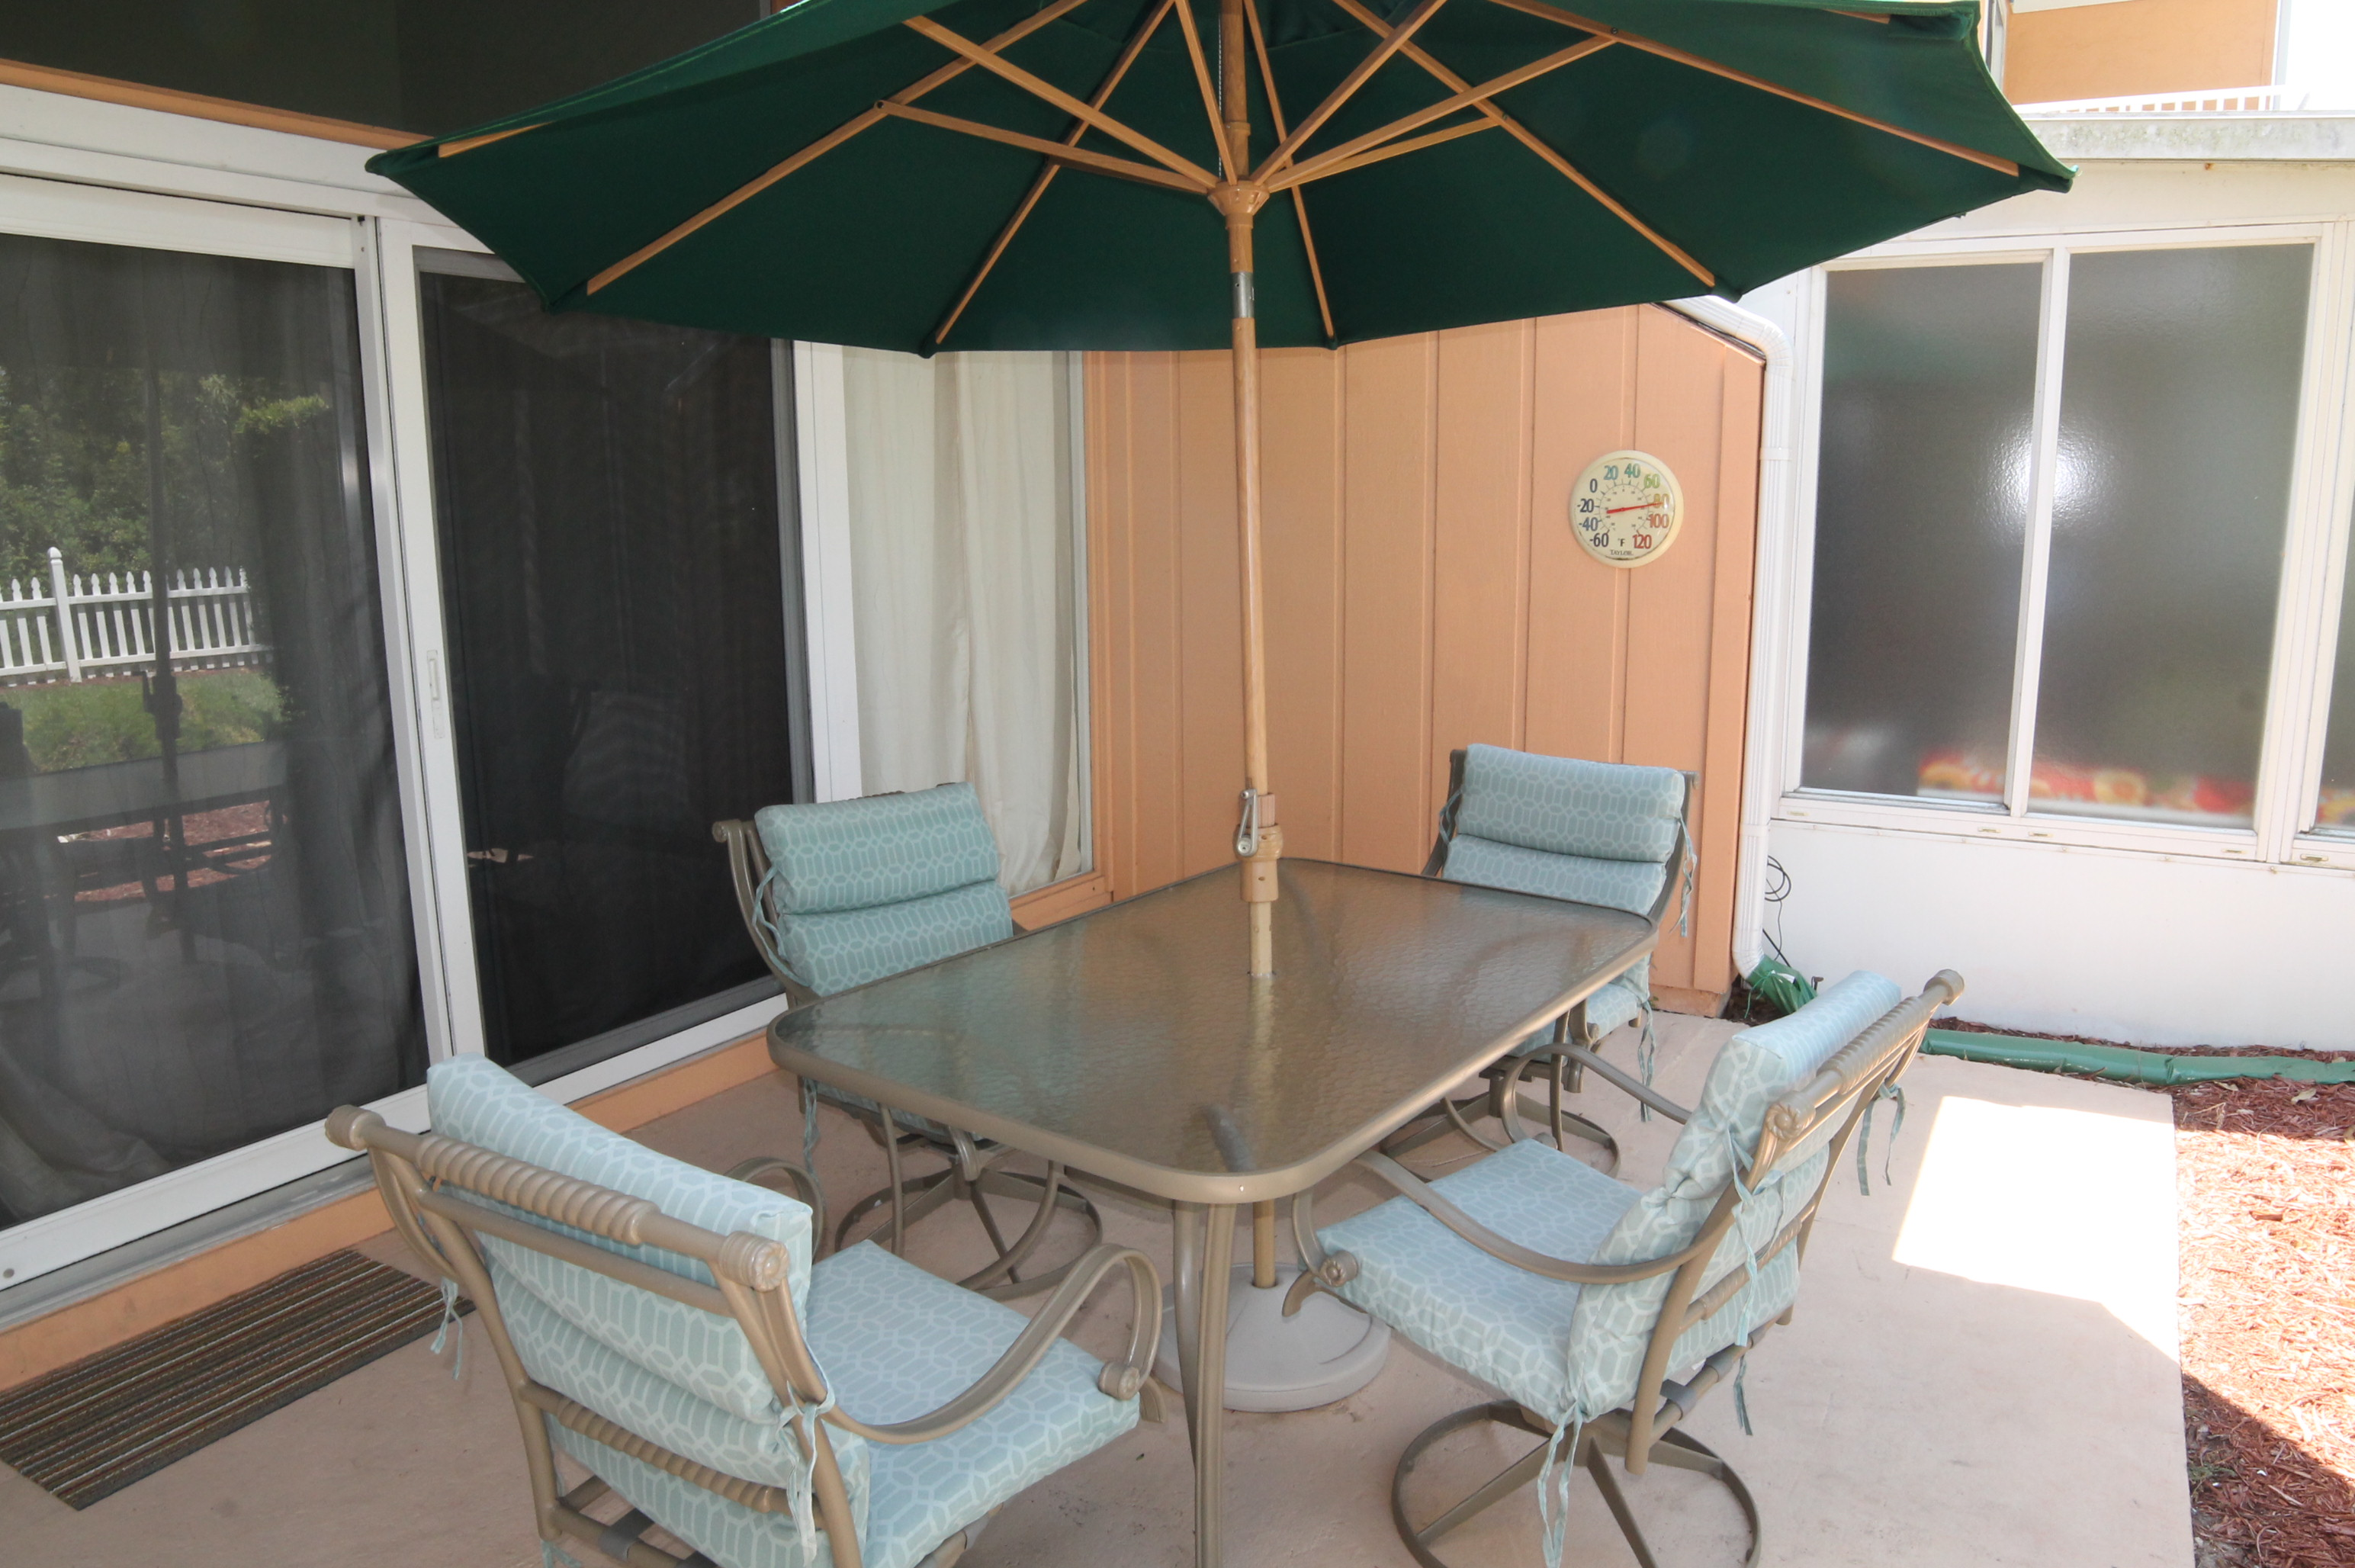 st augustine beach and tennis club unit 3 ra90641 redawning st augustine beach and tennis club unit 3 vacation rental in st augustine